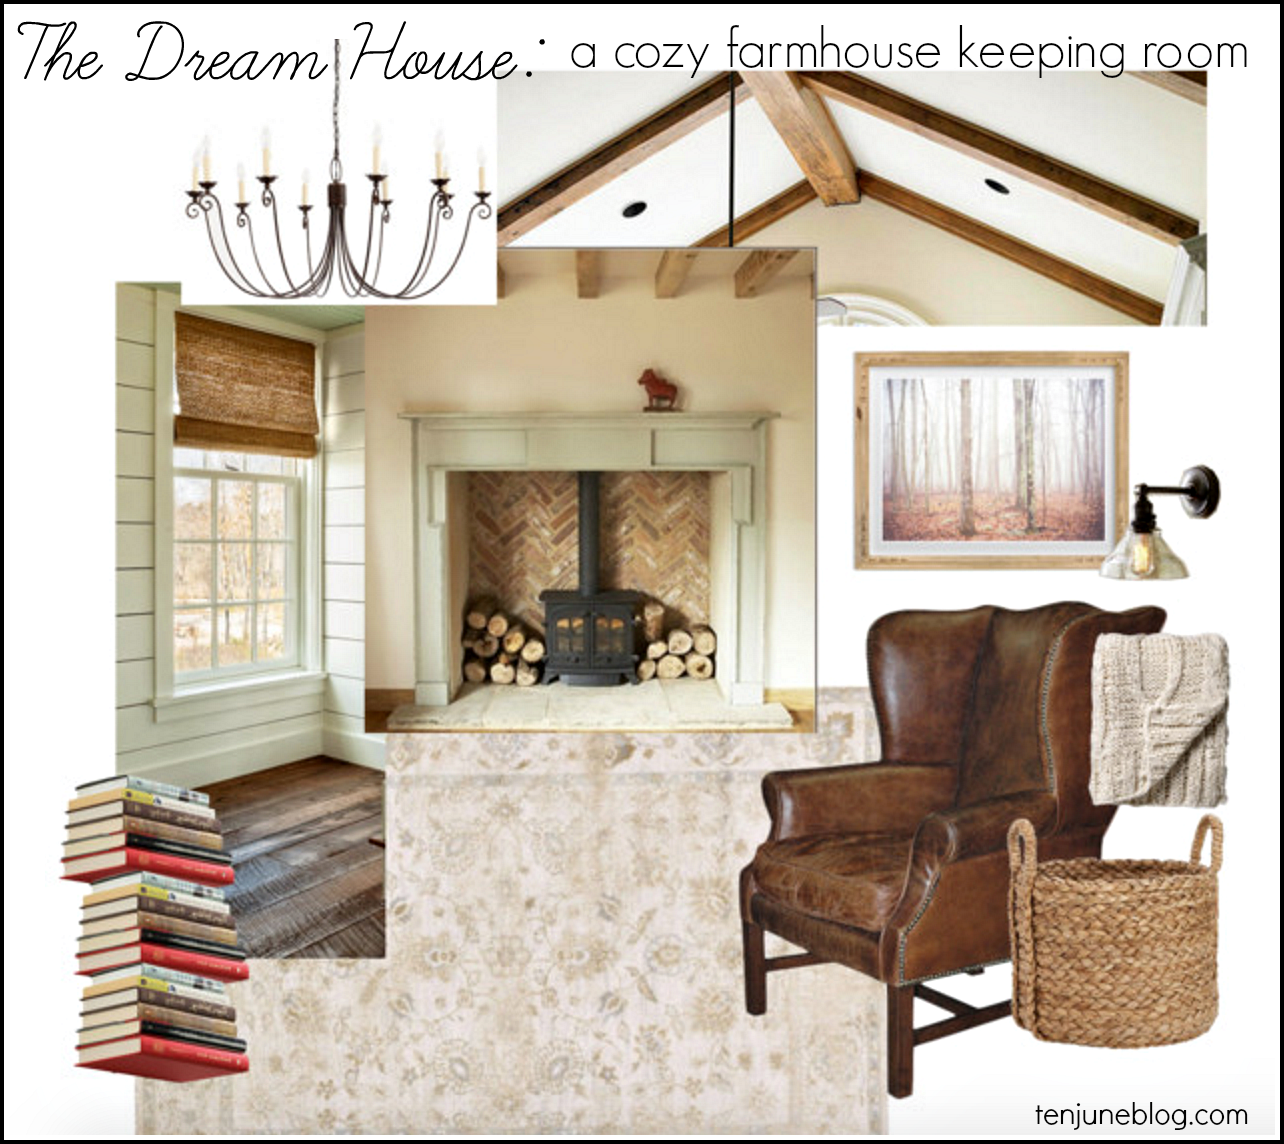 Ten June: The Dream House: A Cozy Farmhouse Keeping Room